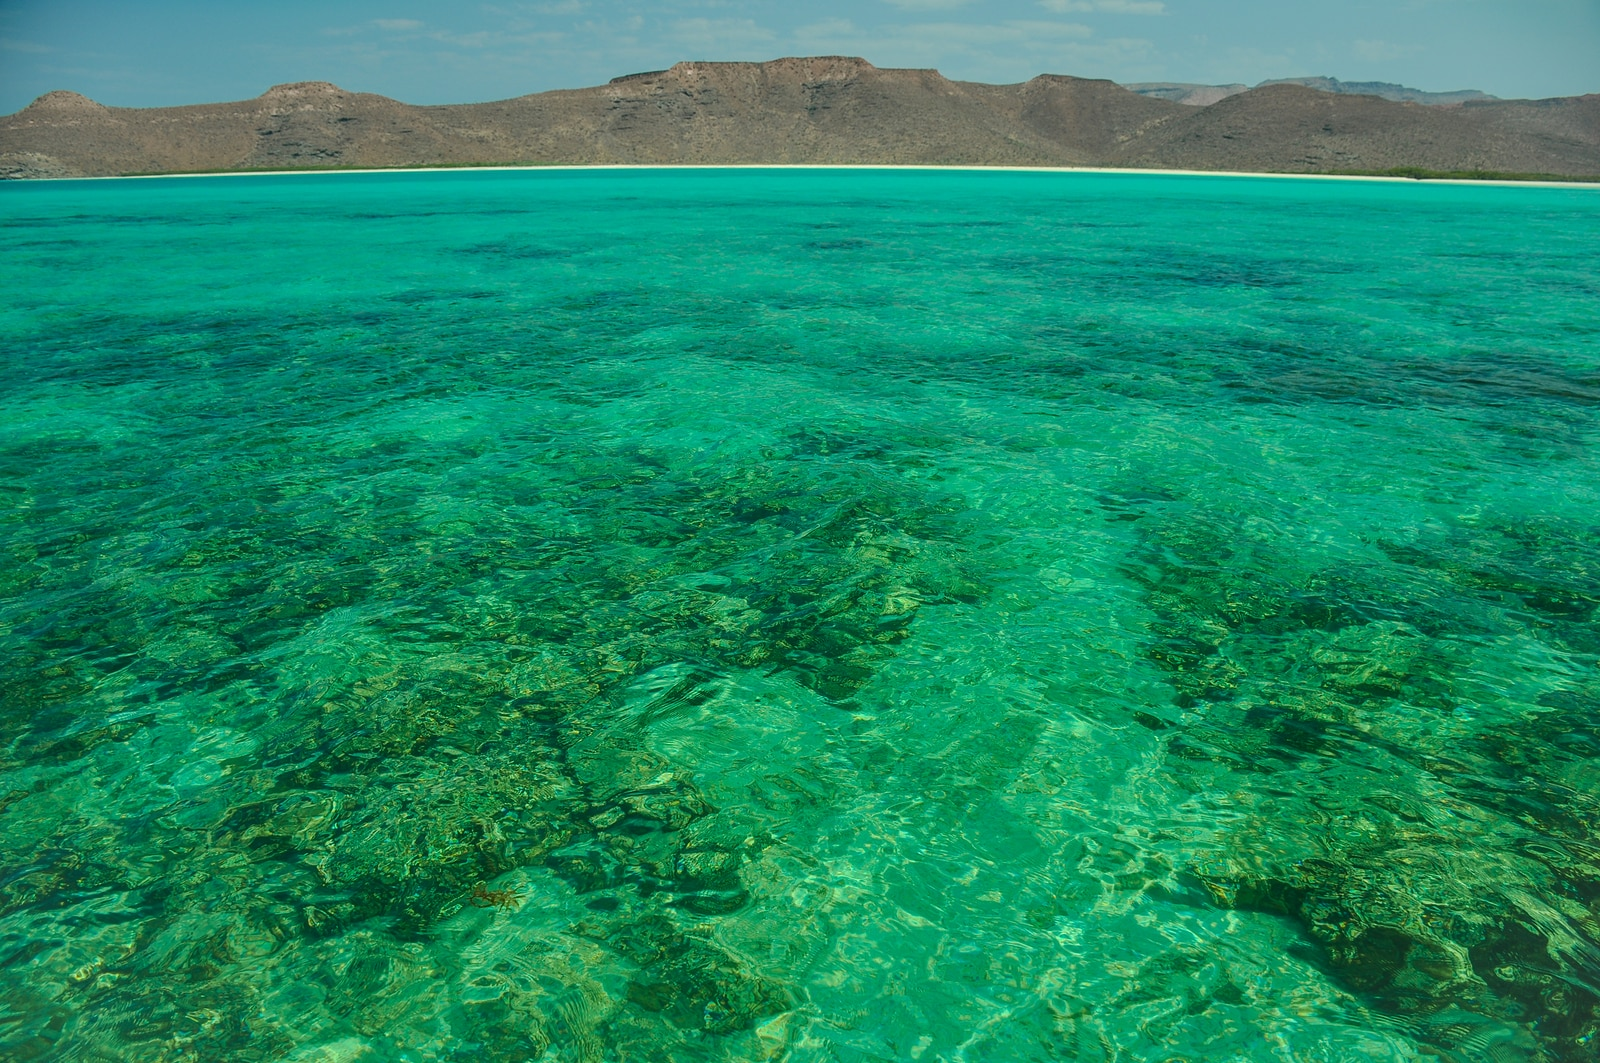 Baja California and its Sea of Cortez